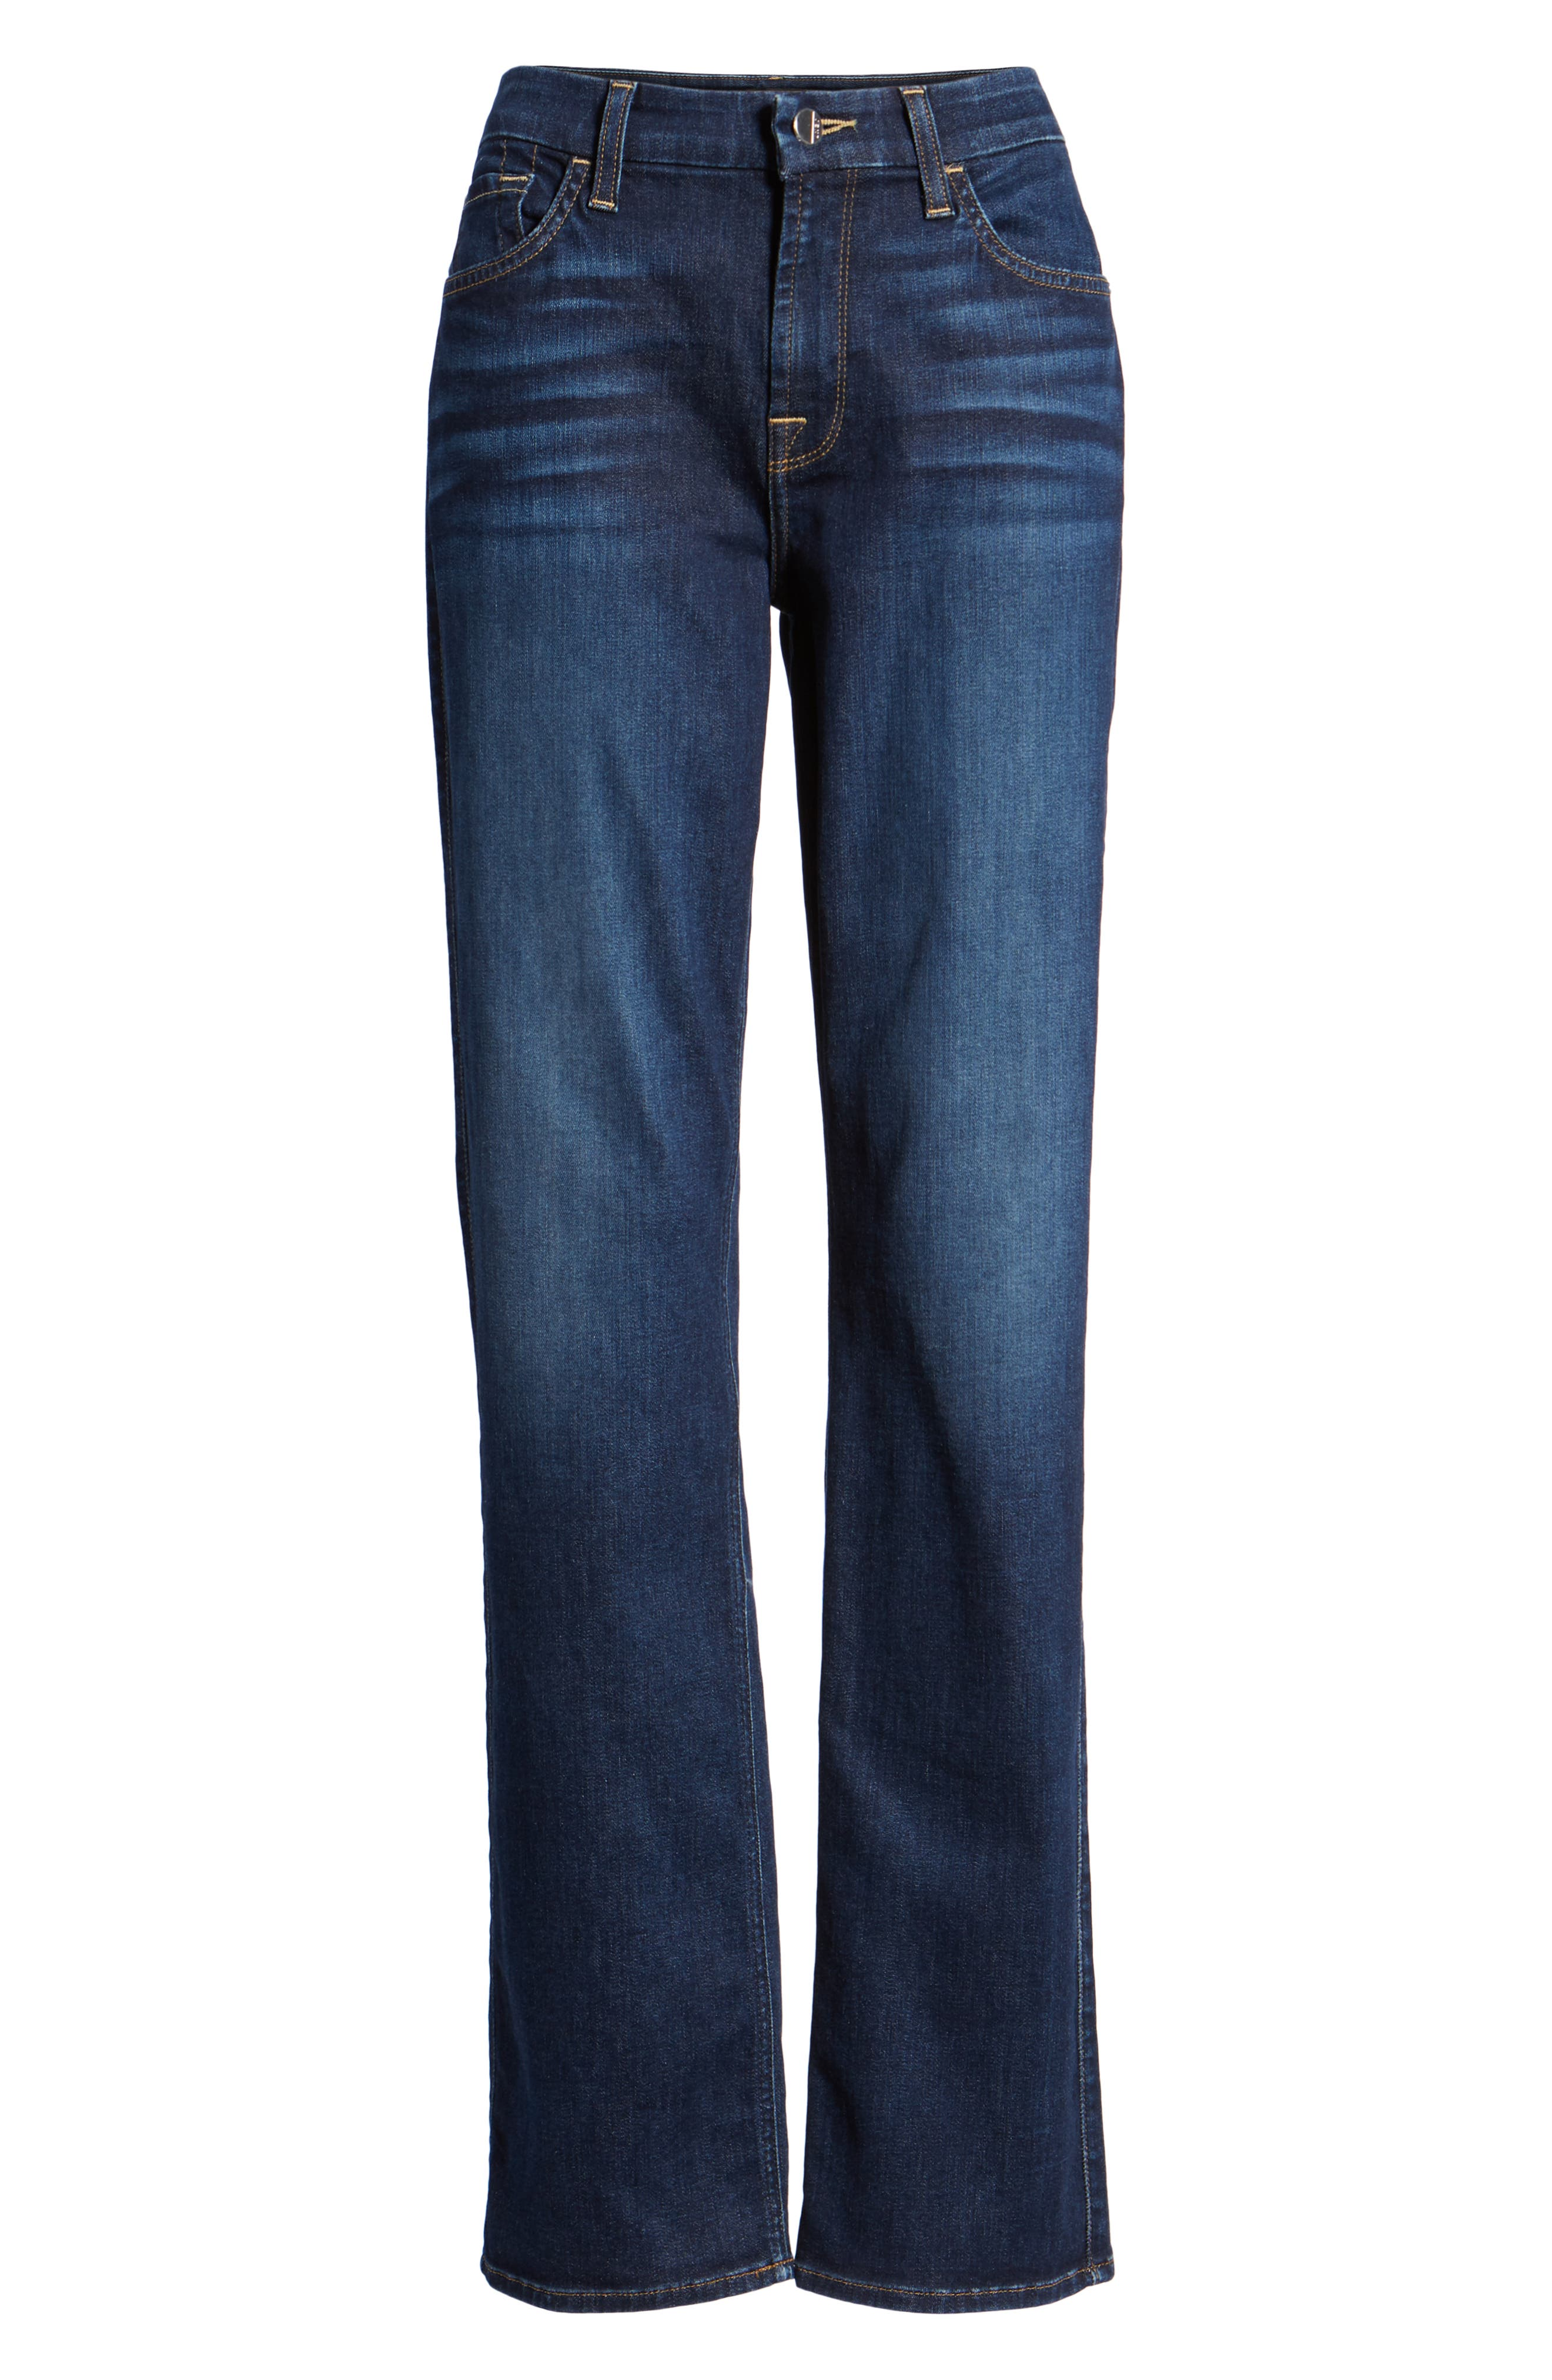 JEN7 BY 7 FOR ALL MANKIND, Stretch Slim Straight Leg Jeans, Alternate thumbnail 7, color, 400